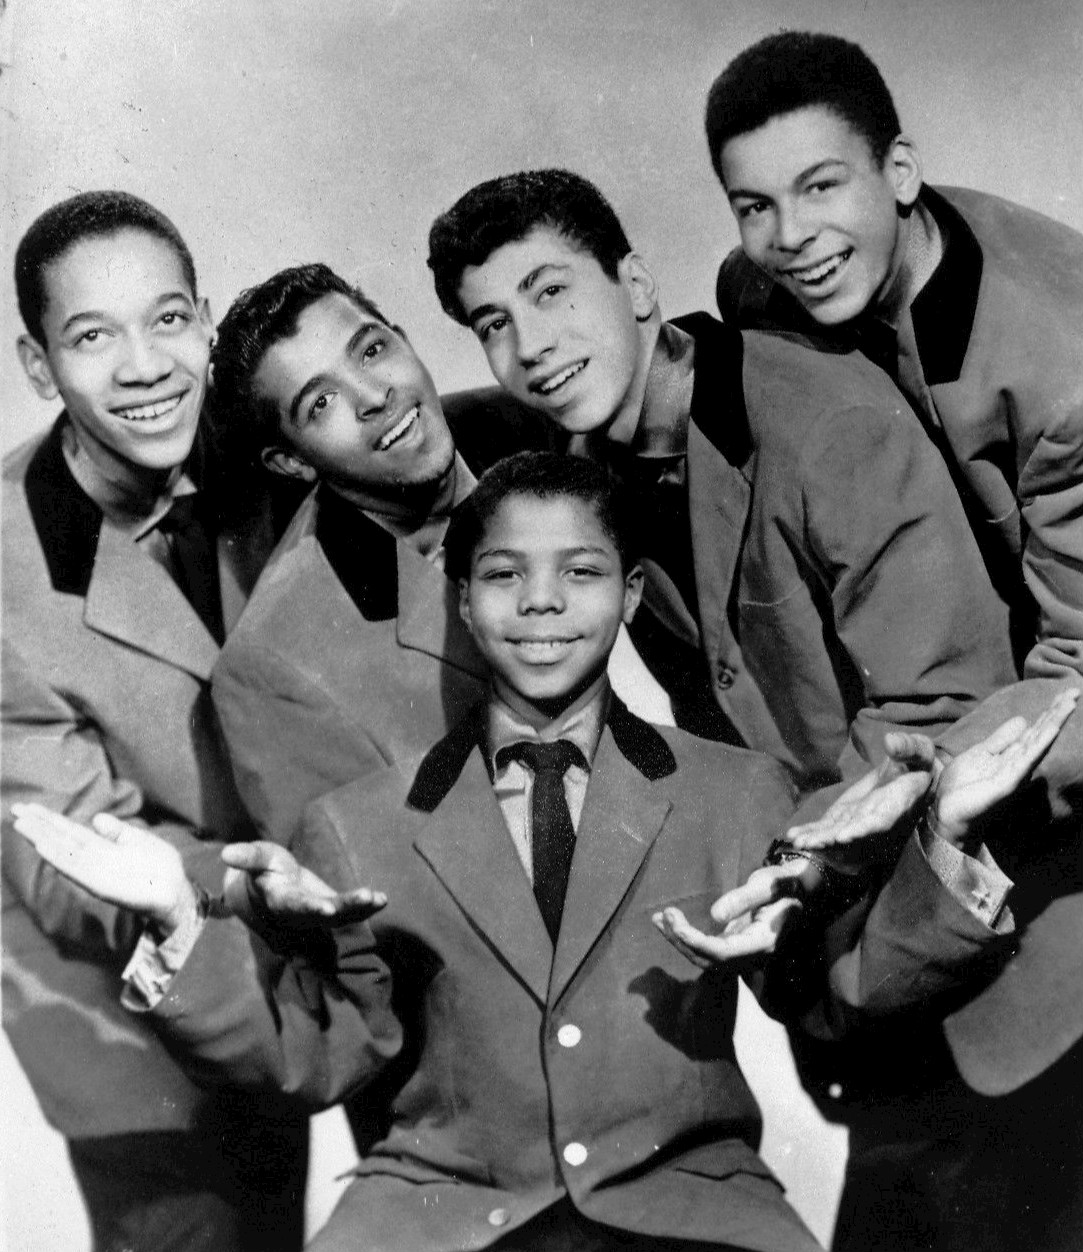 Frankie Lymon and The Teenagers publicity photo, March 3, 1956